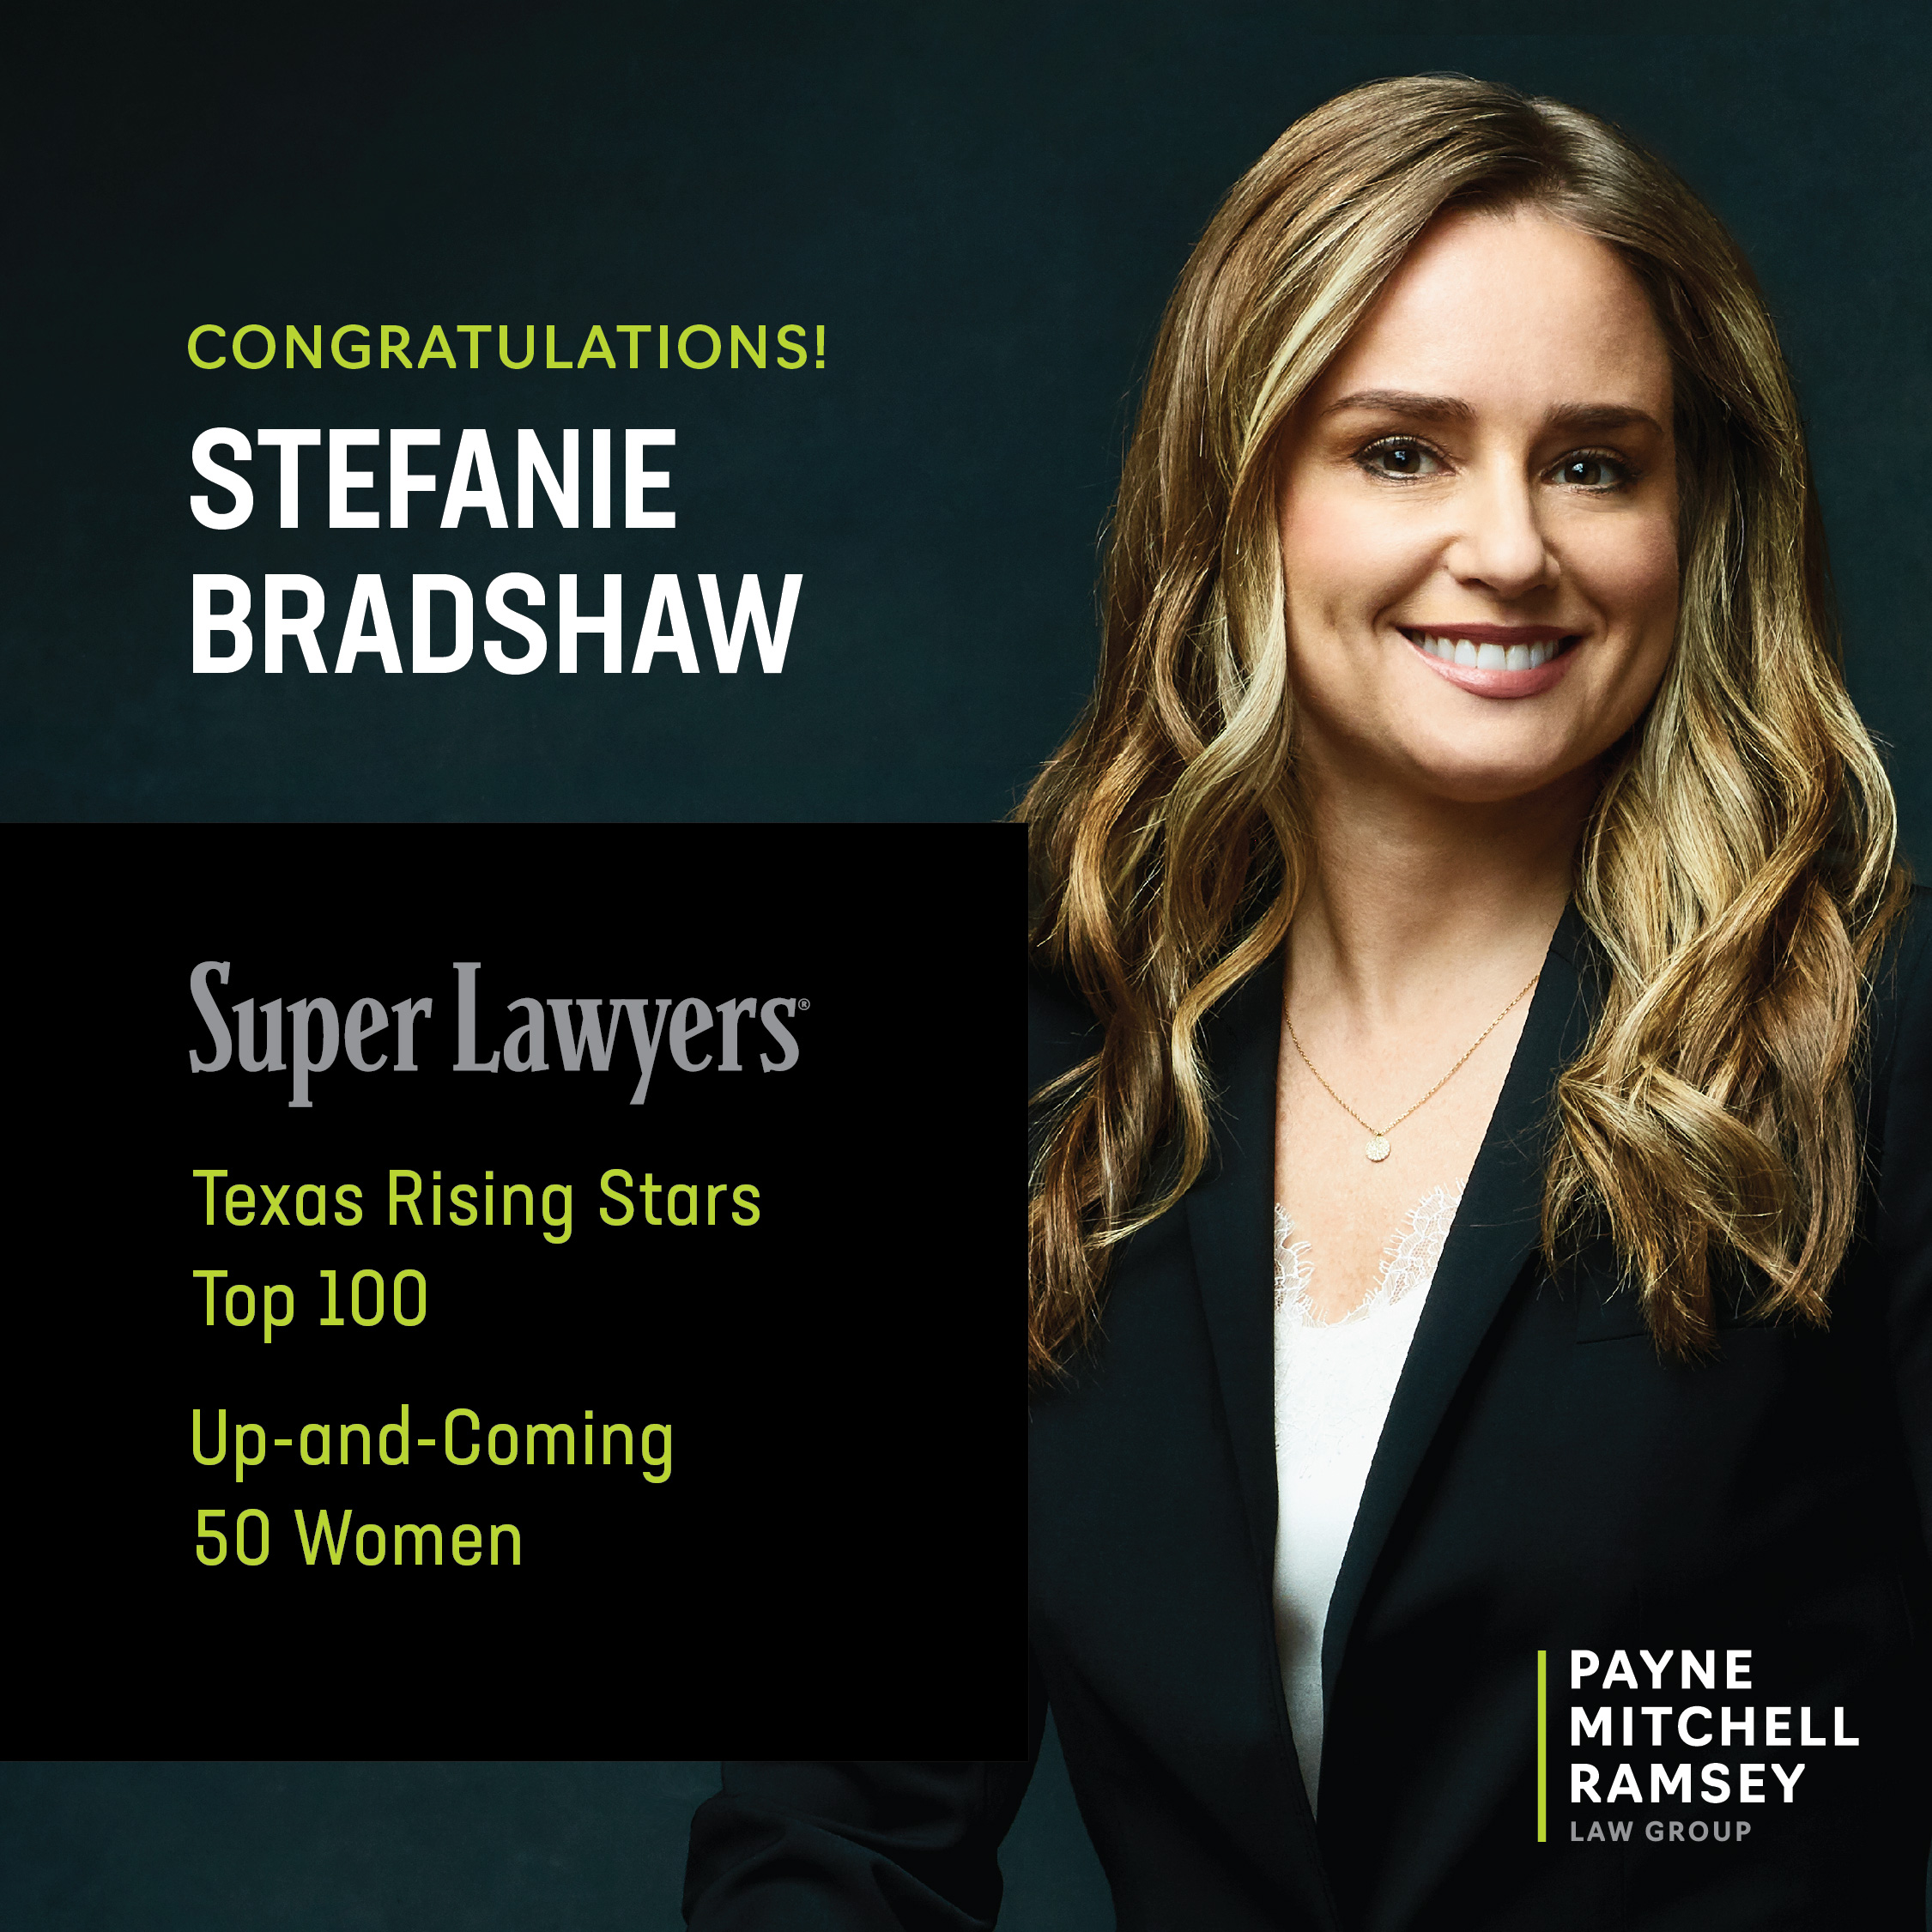 Stephanie Bradshaw Named Super Lawyers Texas Rising Star for 6th Consecutive Year